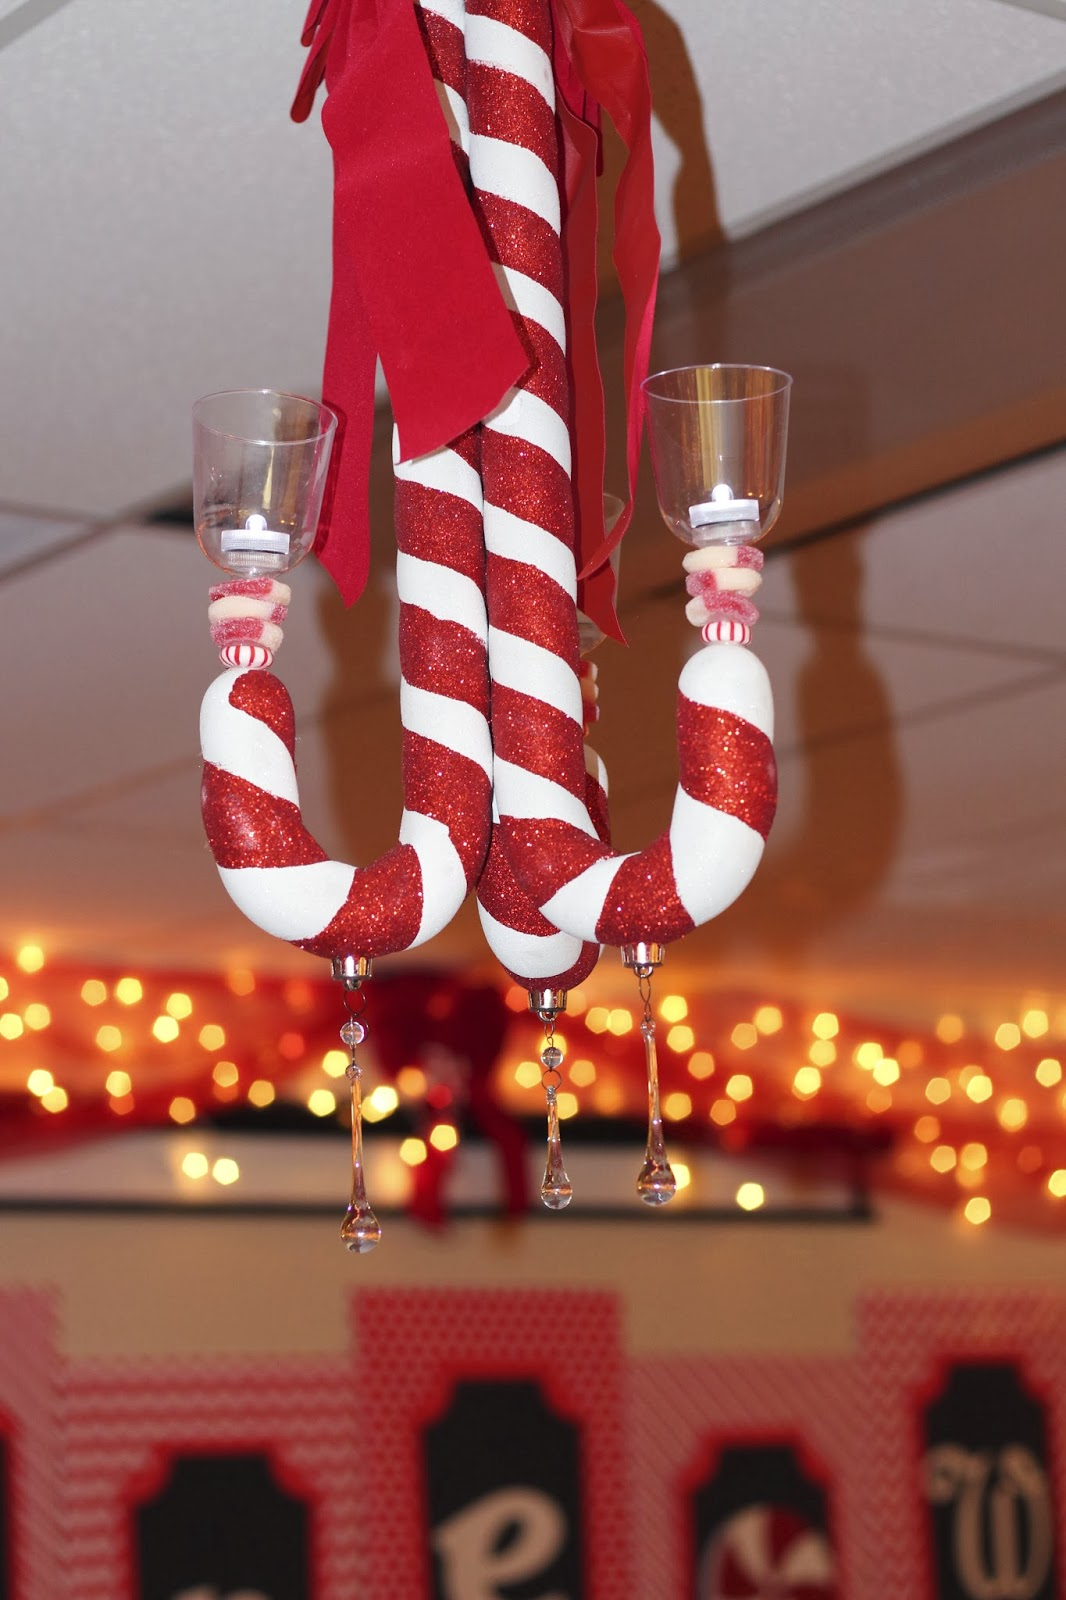 Large candy cane ornaments - I Took Three Large Candy Cane Ornaments Turned Them Upside Down And Glued Them Together With My Glue Gun The Tea Light Holders Are Plastic Wine Glasses